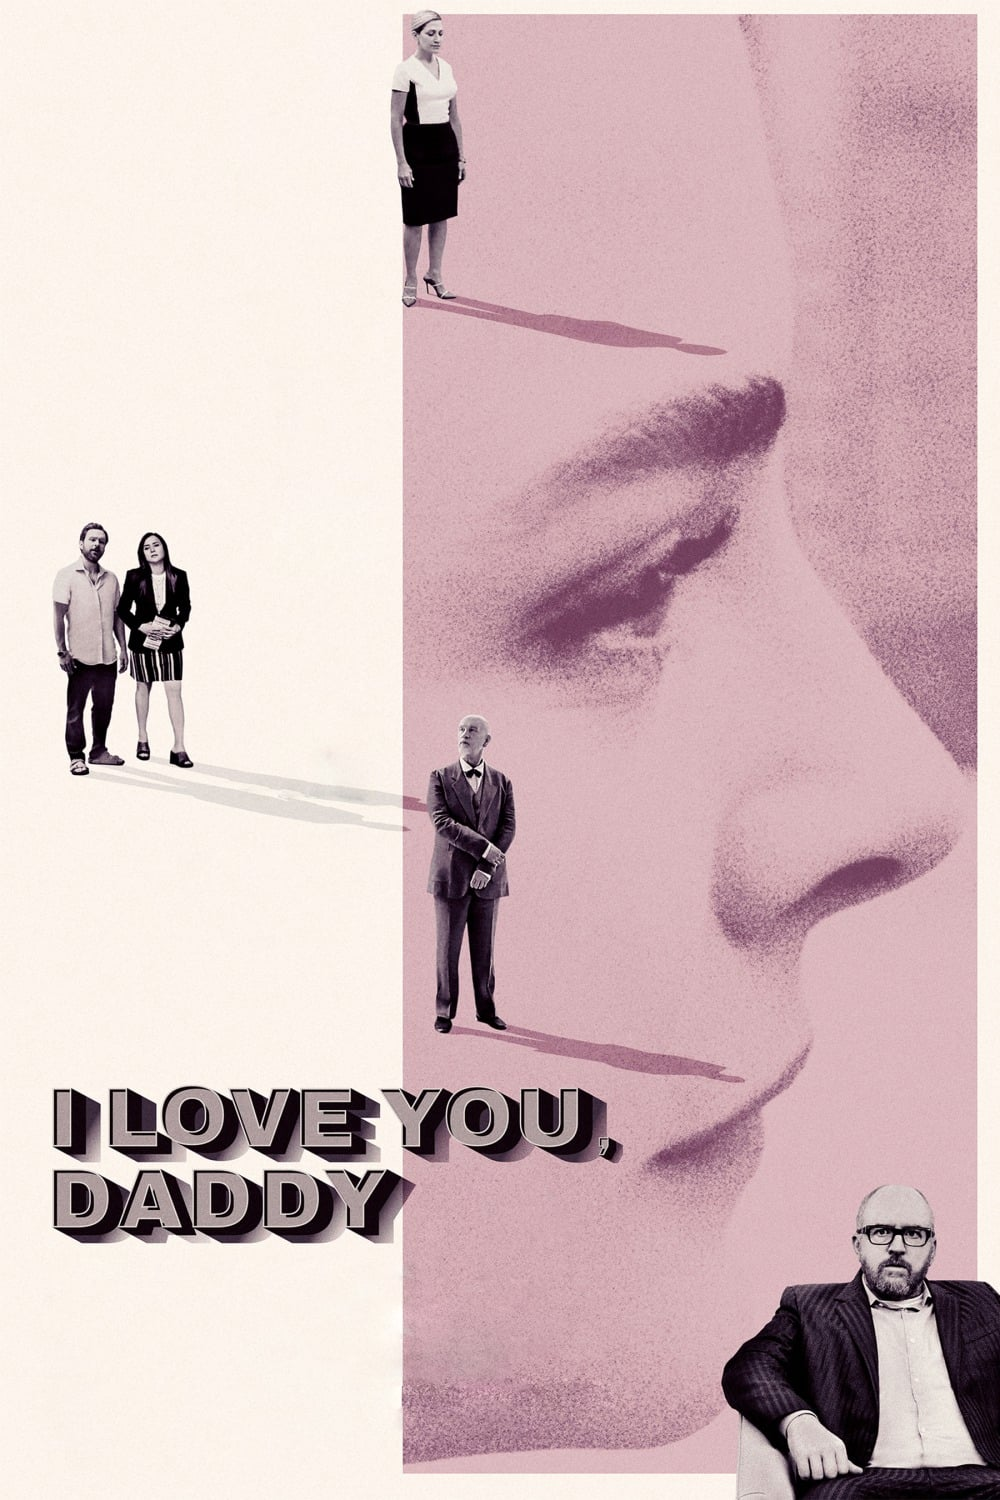 I Love You, Daddy